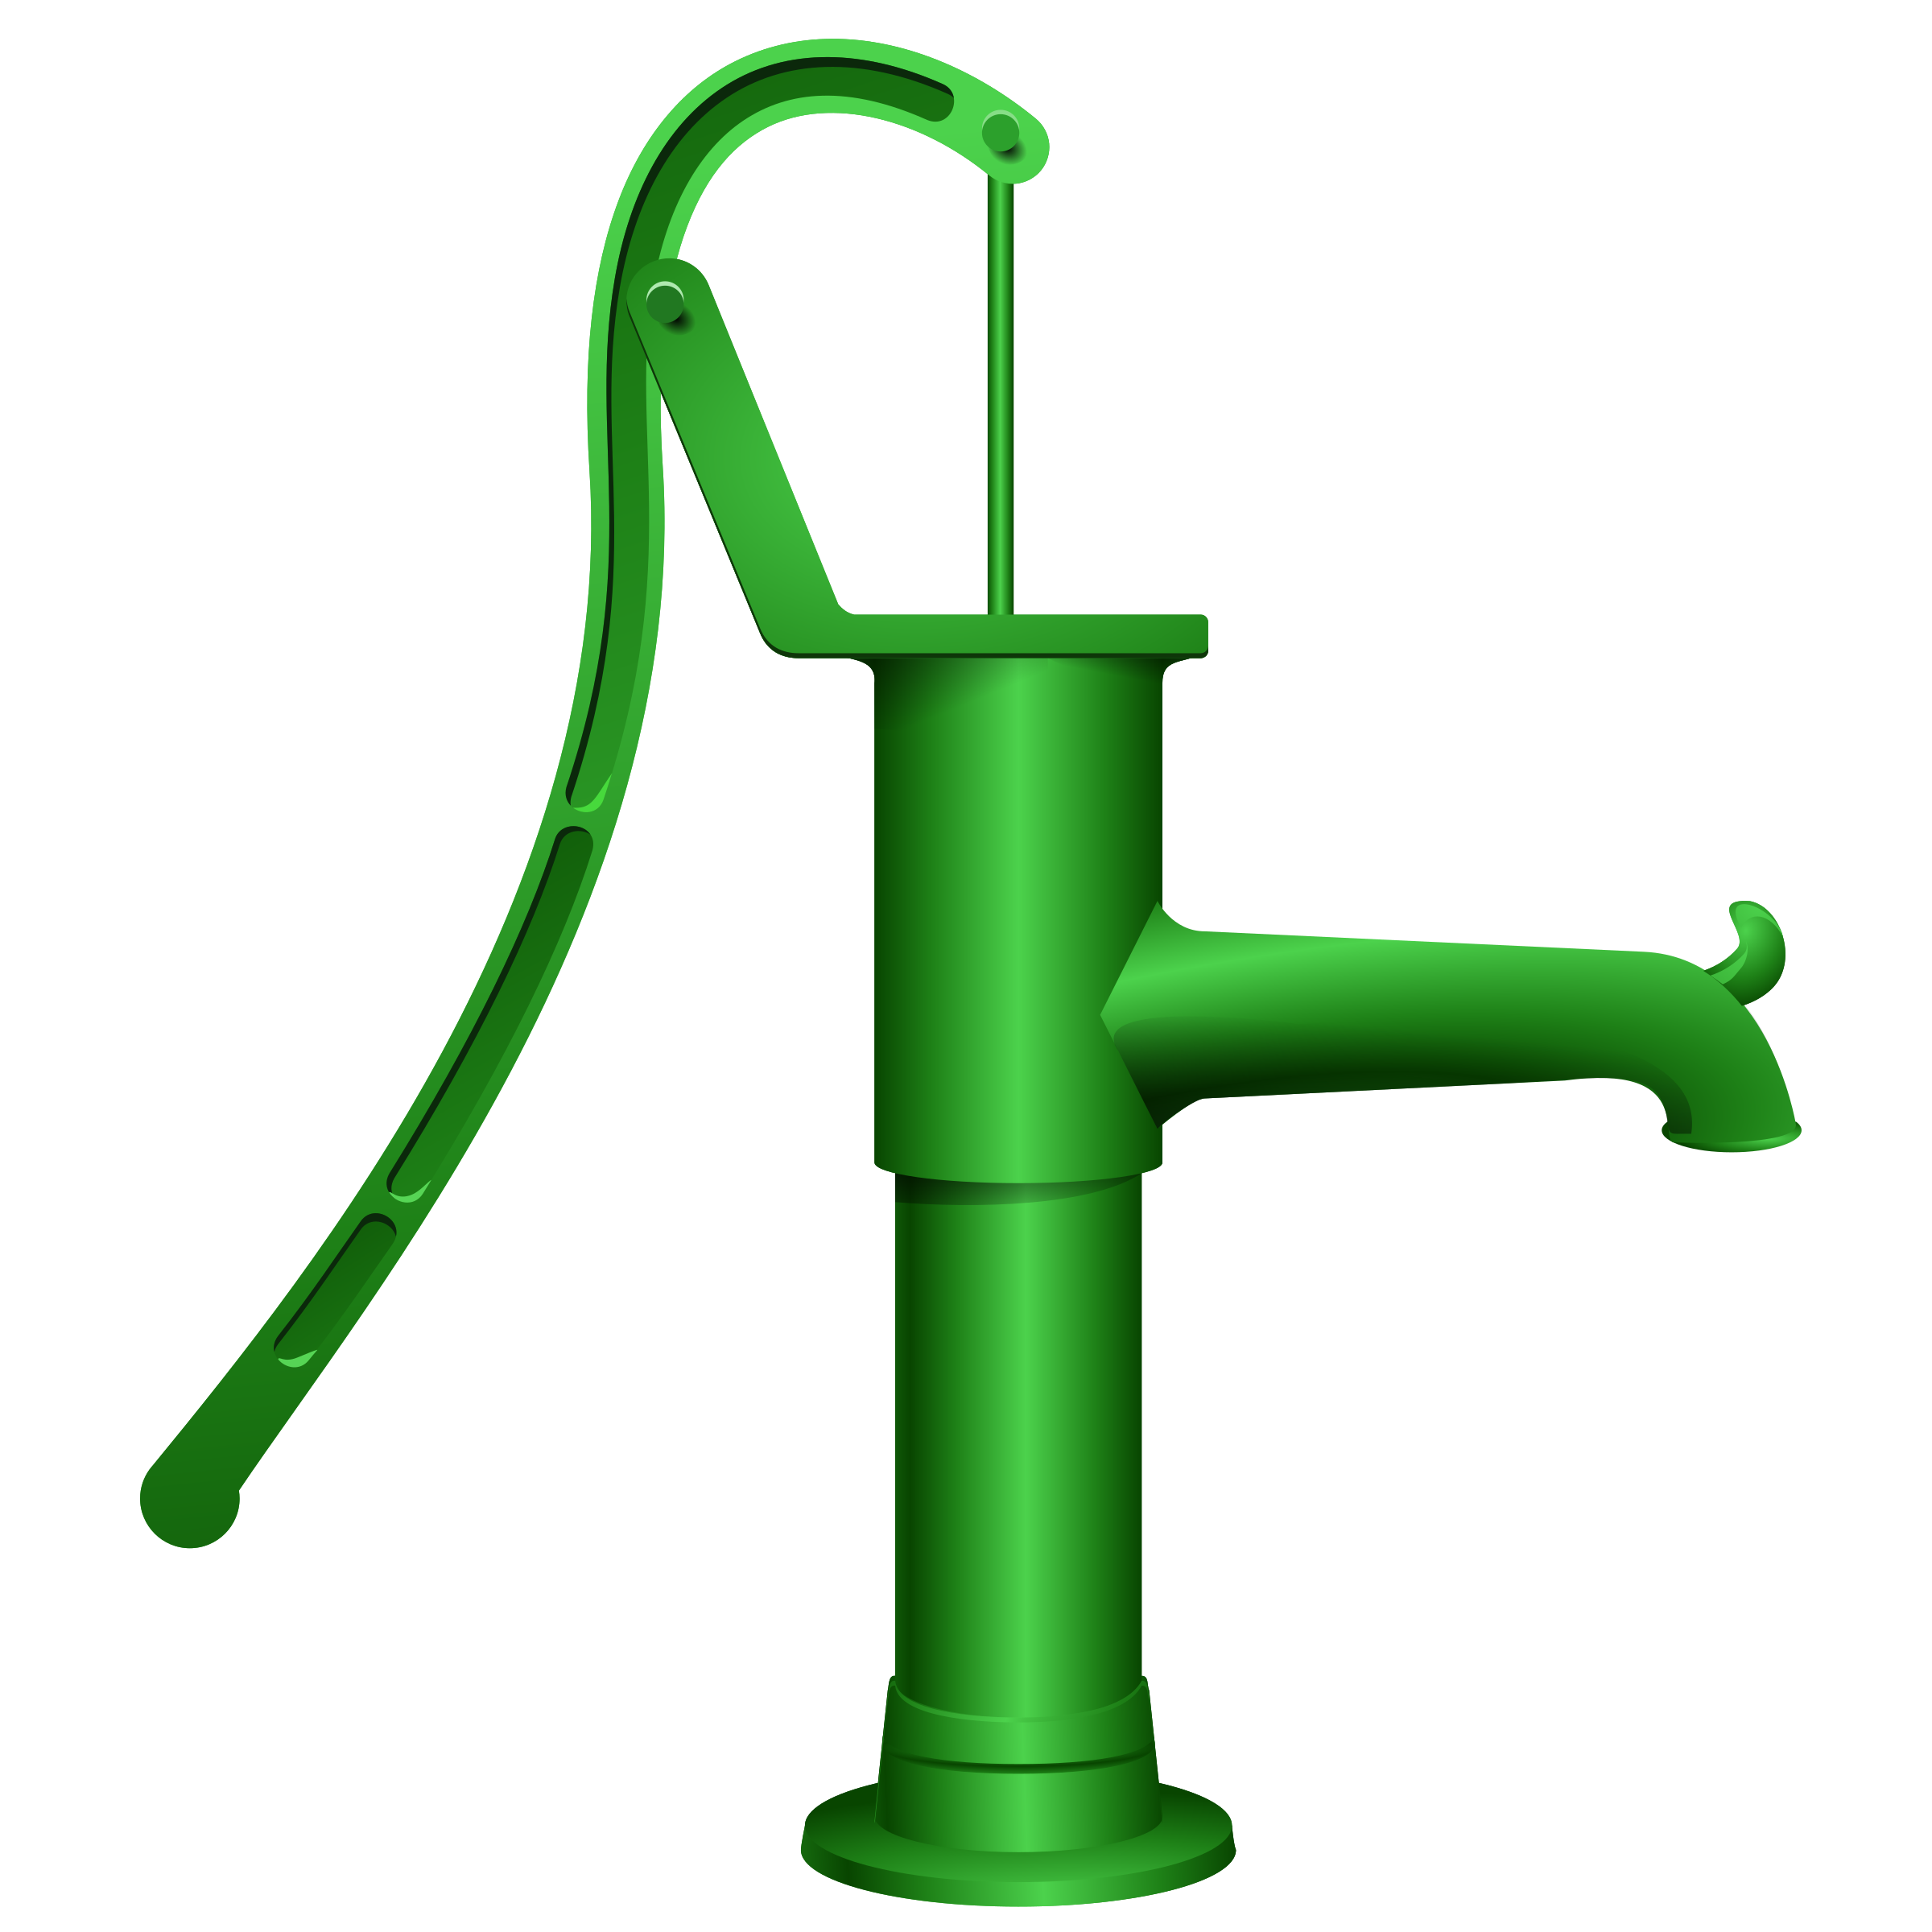 Water clip art library. Pump clipart submersible pump image library stock